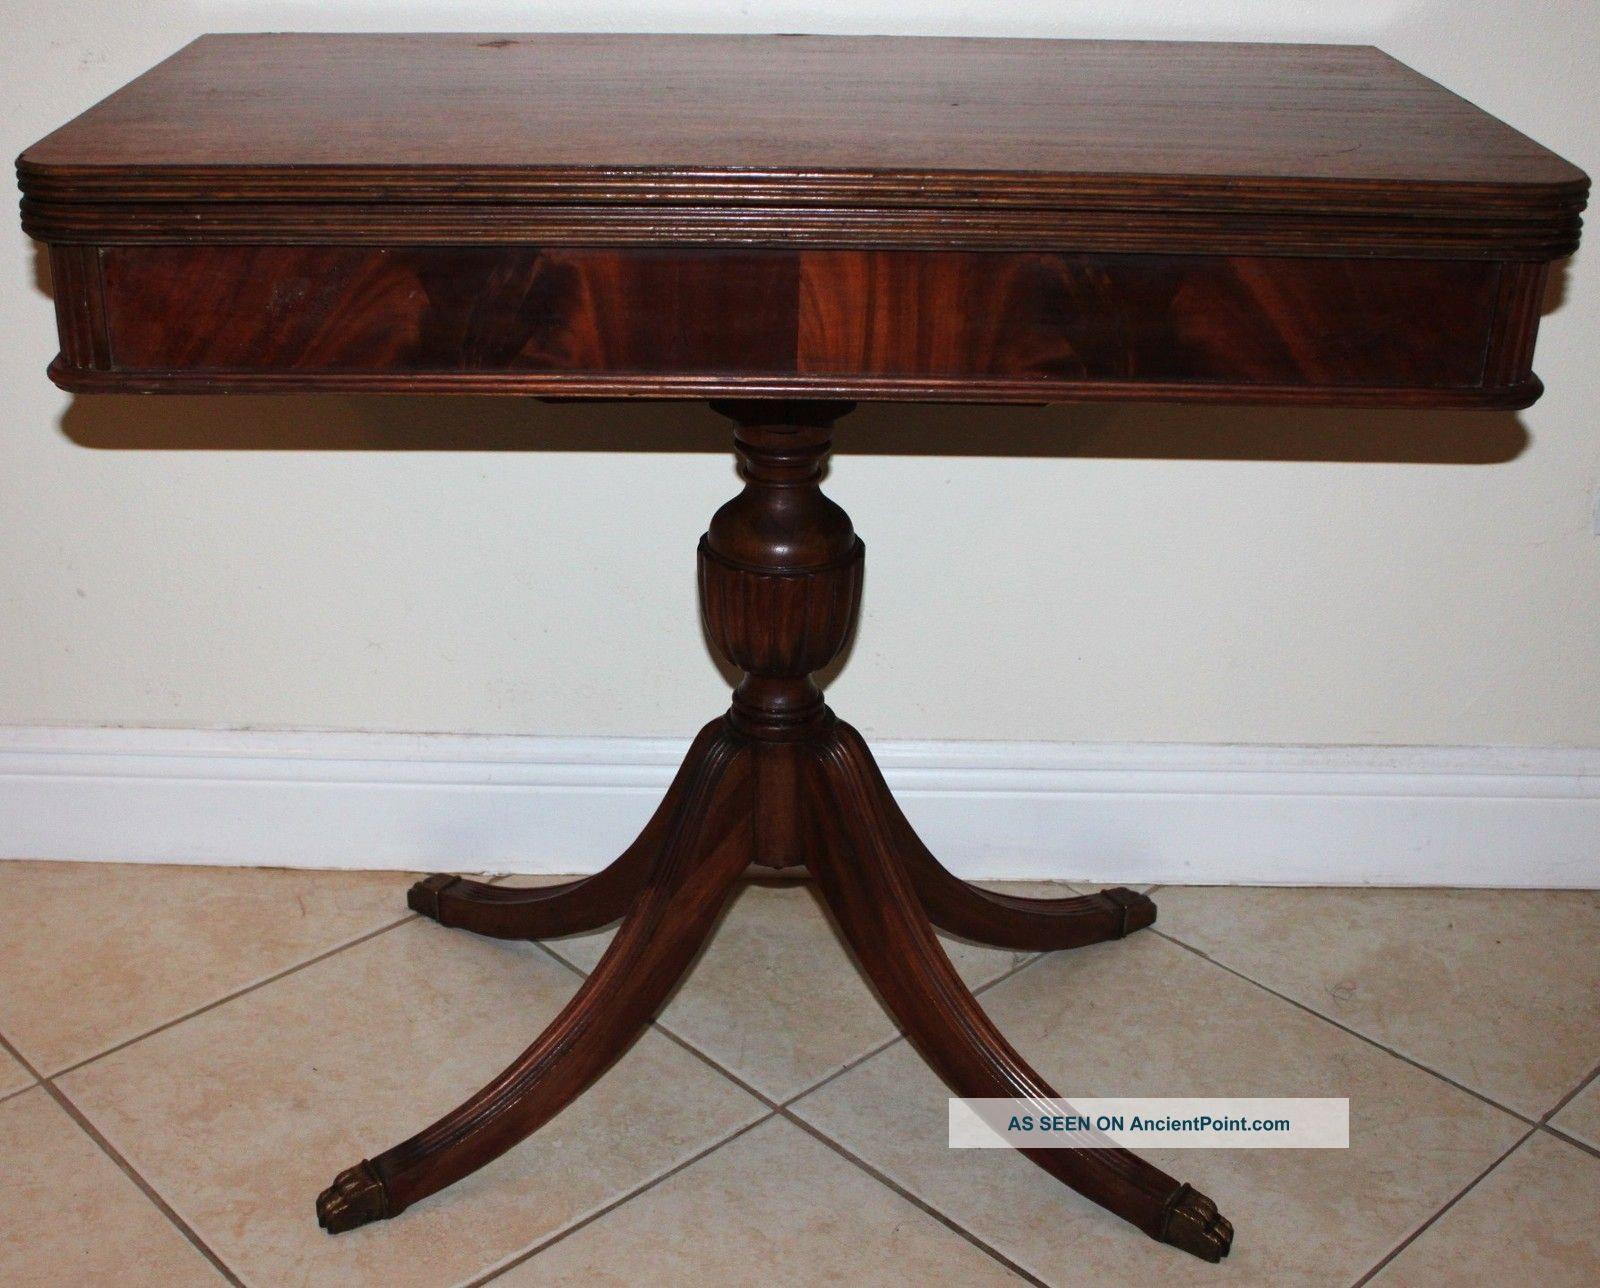 Vintage Mahogany Game Table Duncan Phyfe Base Pedastal Claw Foot Legs Lgw Dining Chairs